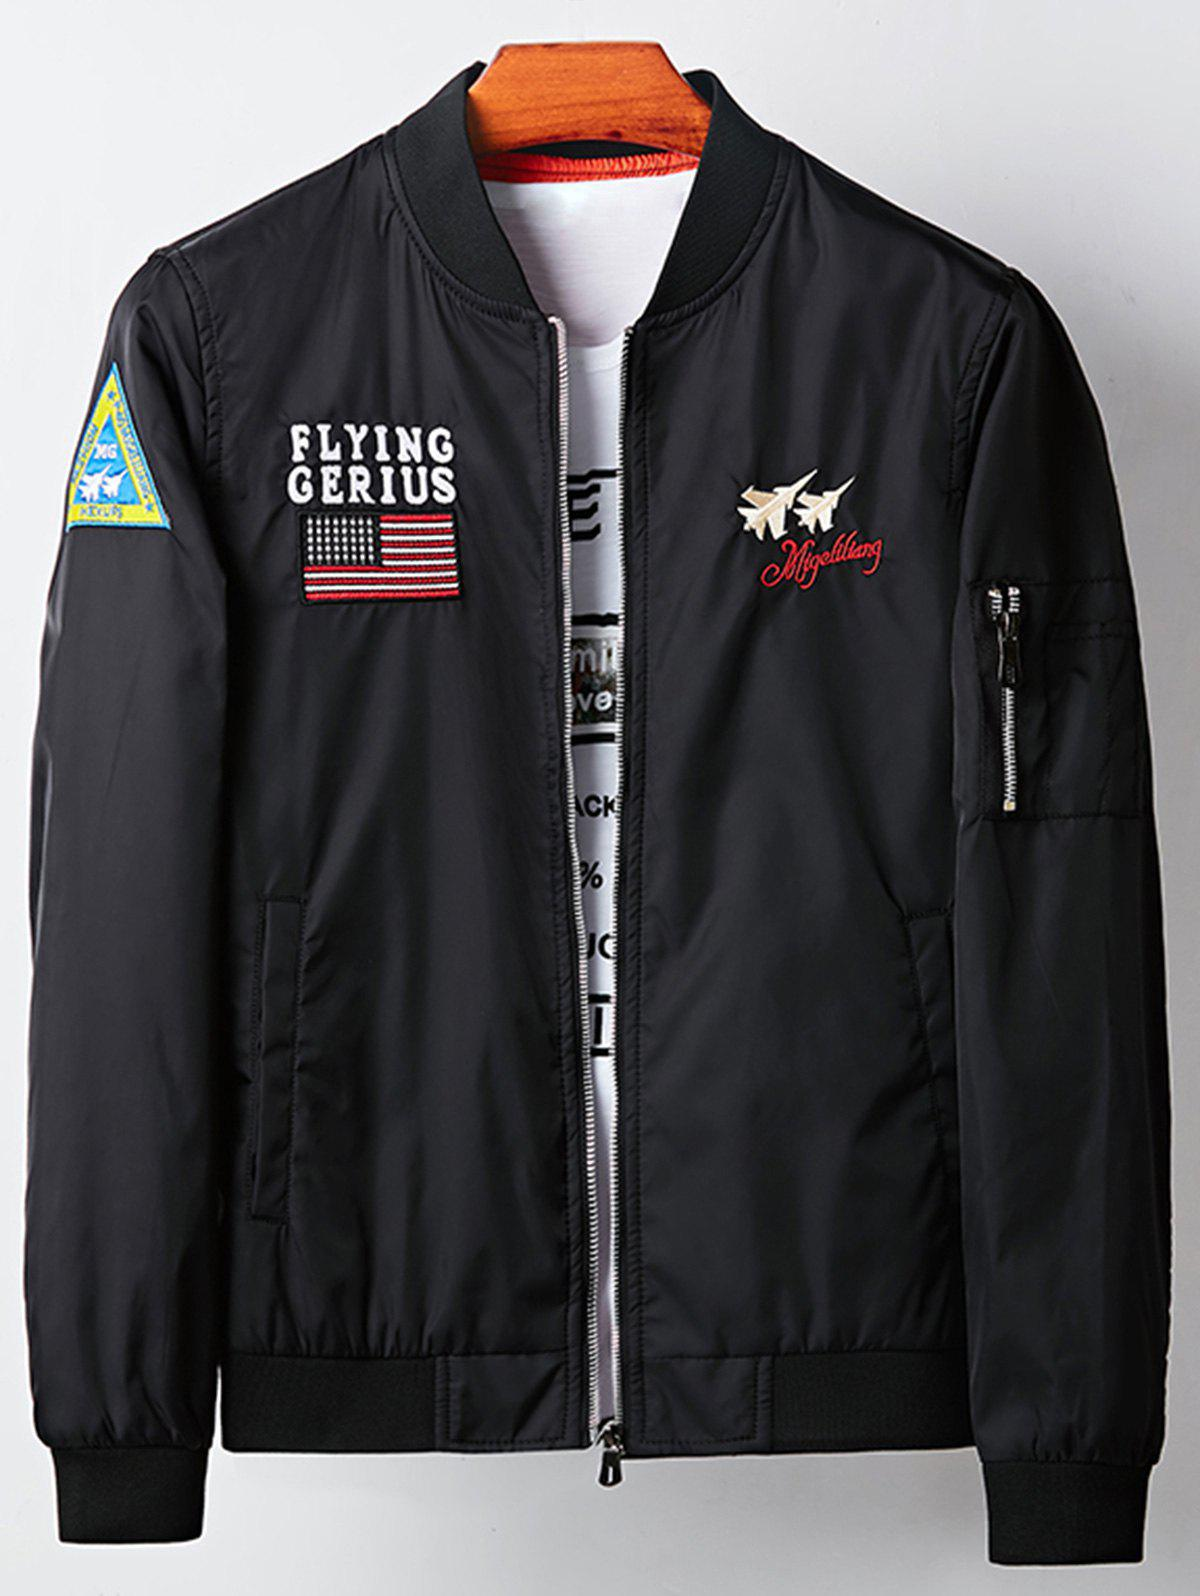 Aircraft Graphic Embroidered Applique Bomber Jacket 225520905